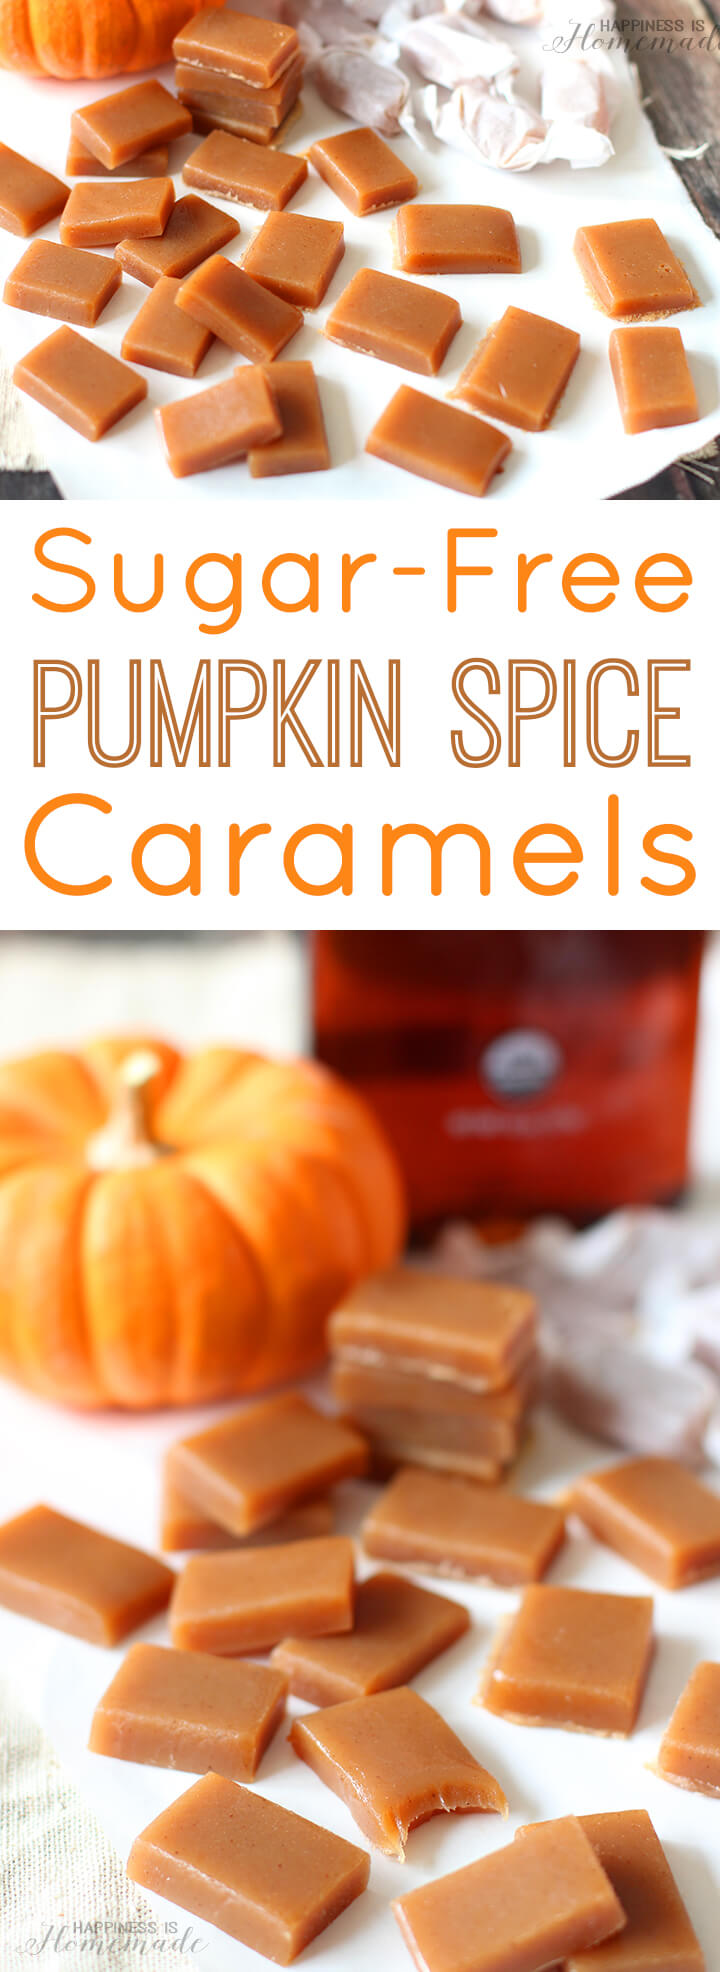 Delicious and Easy Sugar-Free Pumpkin Spice Caramels Recipe These silky smooth pumpkin spice caramels make a great hostess gift, and they're the perfect treat for friends and neighbors.